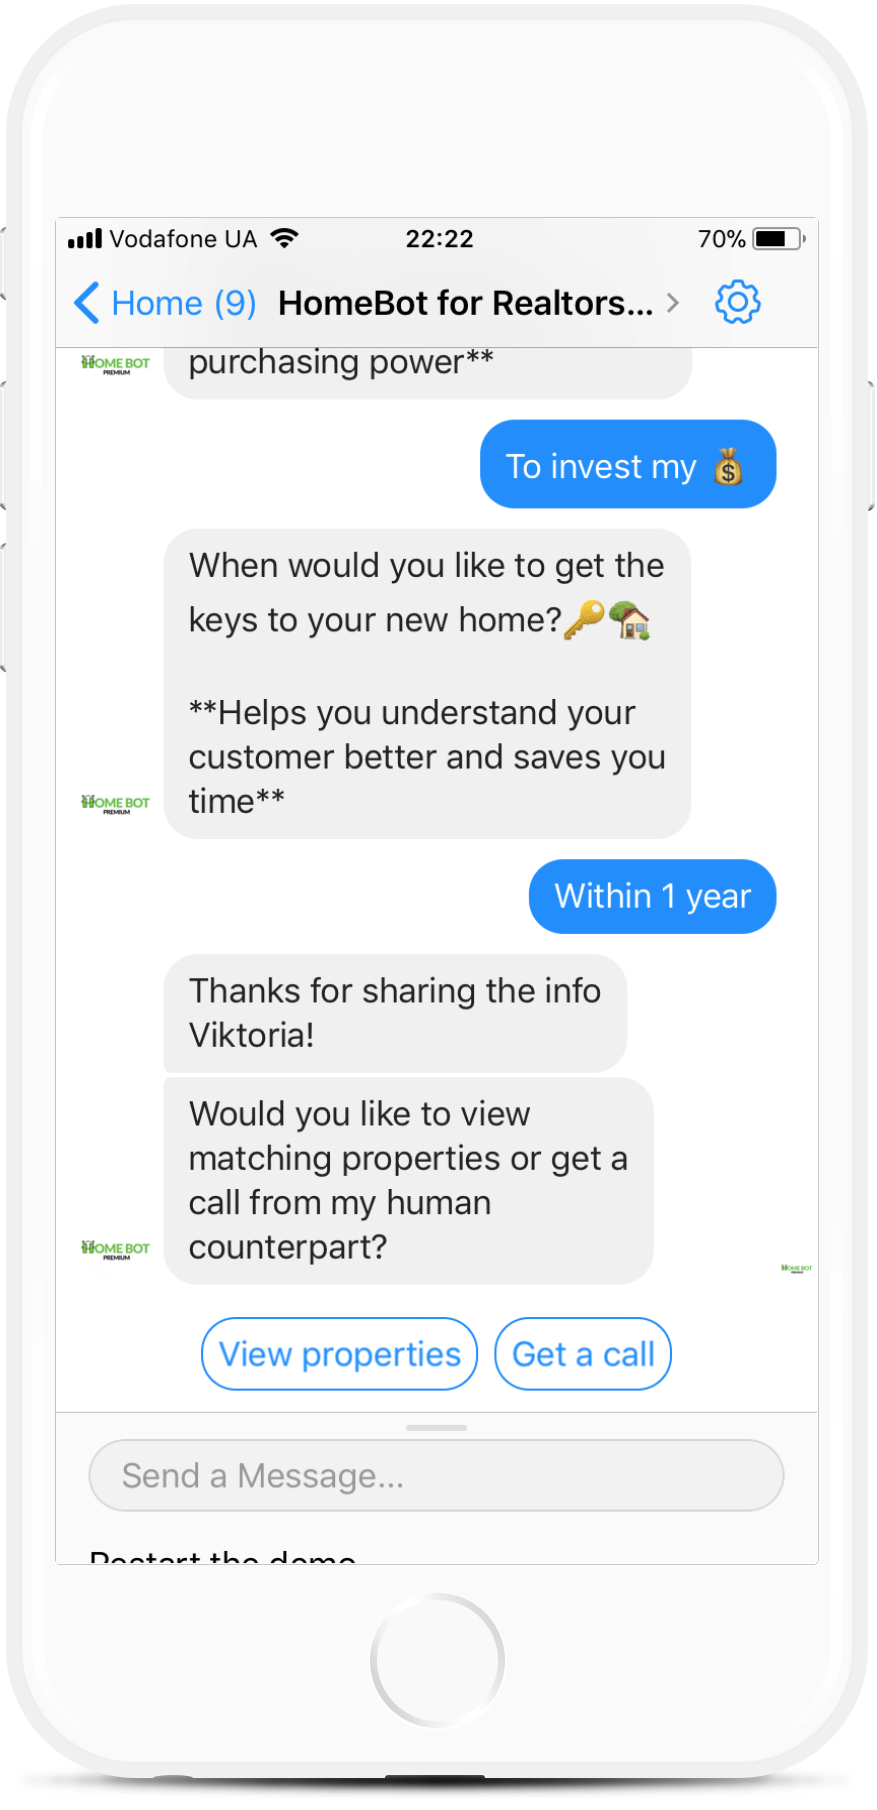 All-in-one bot for Real Estate Companies for $99